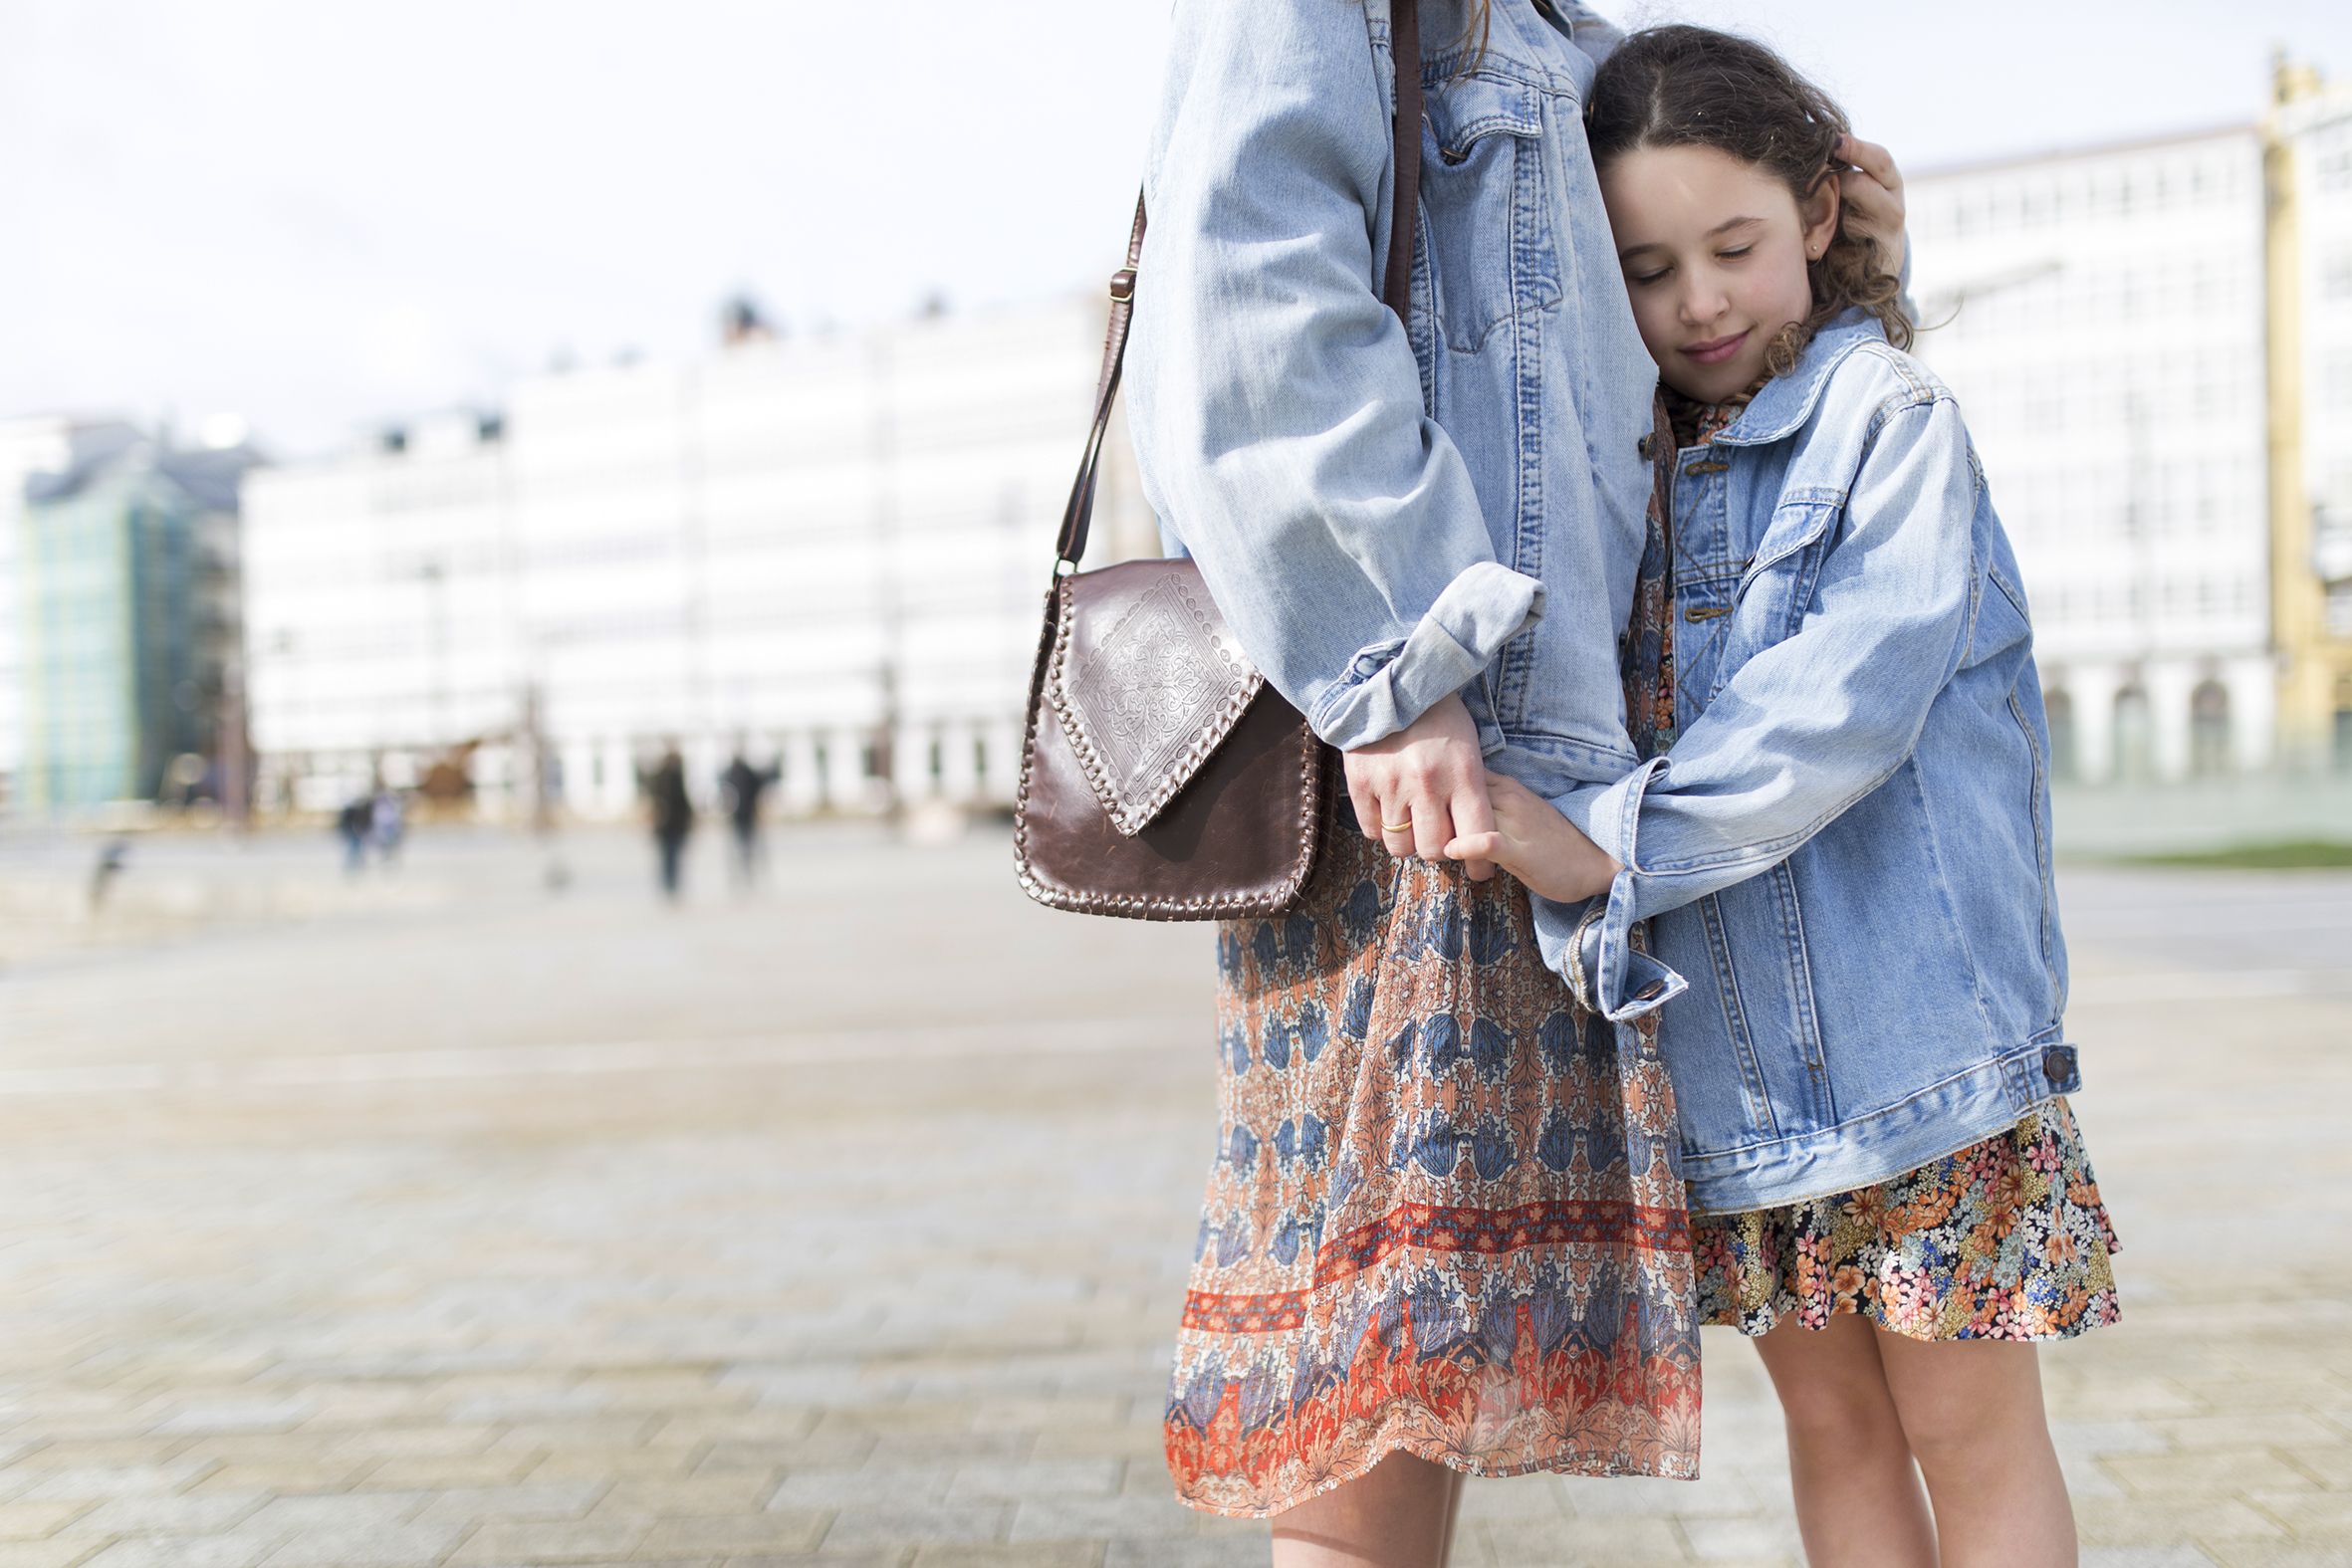 My partner-mi hija-Urban Outfitters- madre e hija- fashion-moda-street style-jimena&me-mother daughter-promod-zara kids-denim jacket